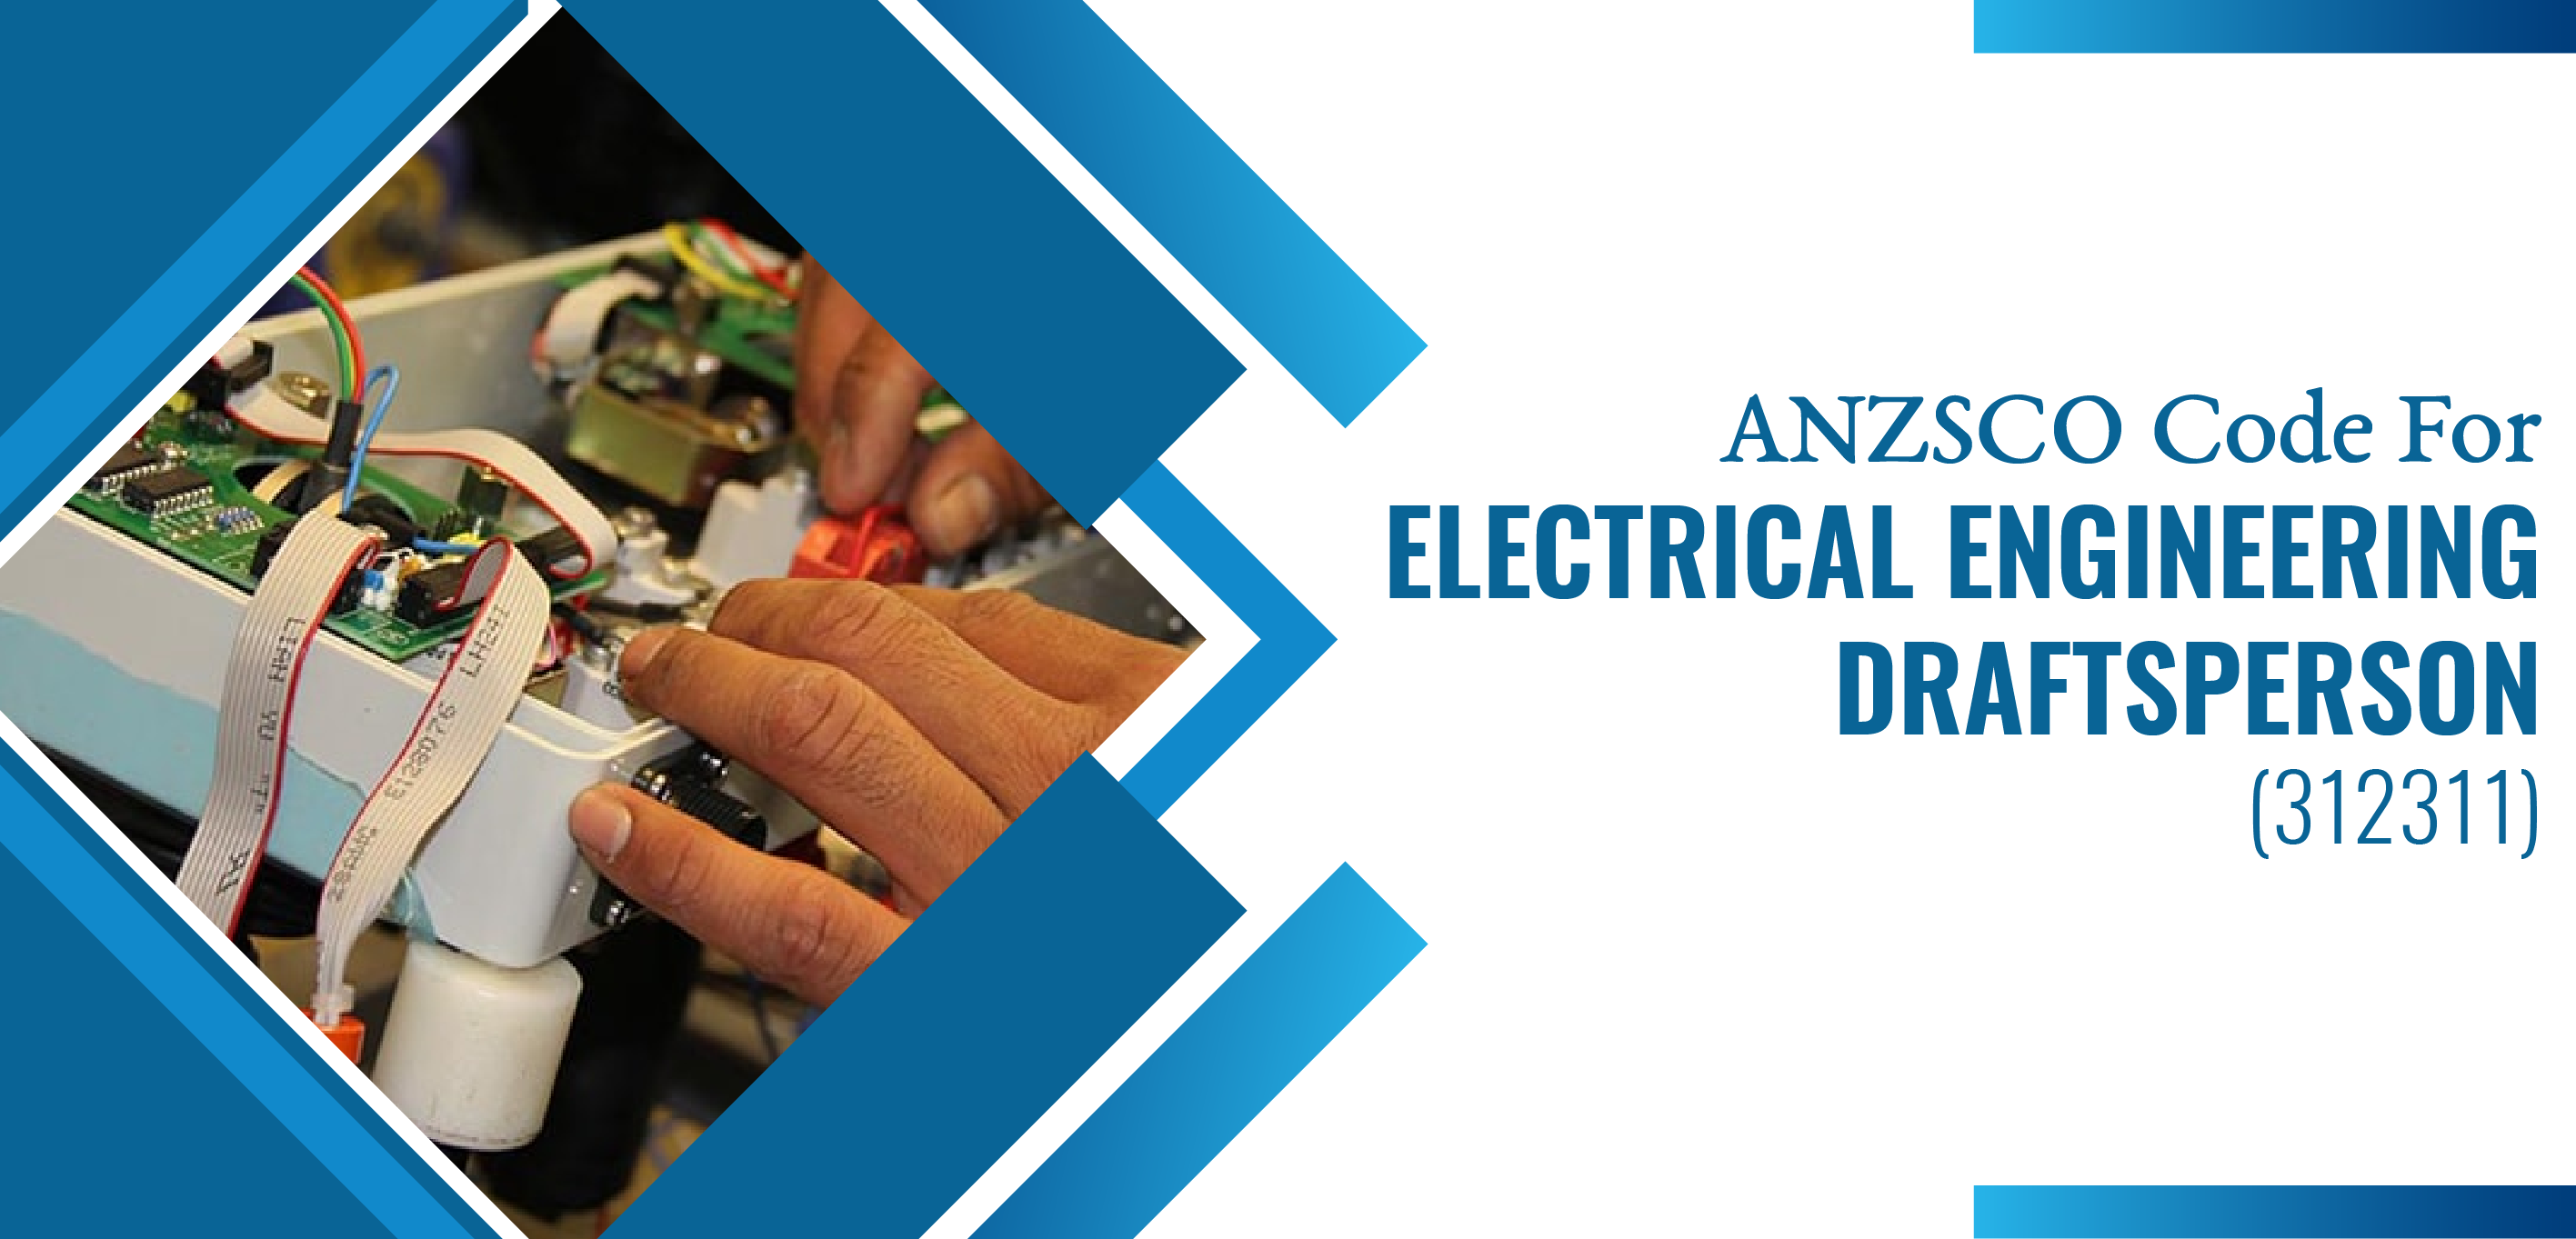 Electrical Engineering Draftsperson ANZSCO